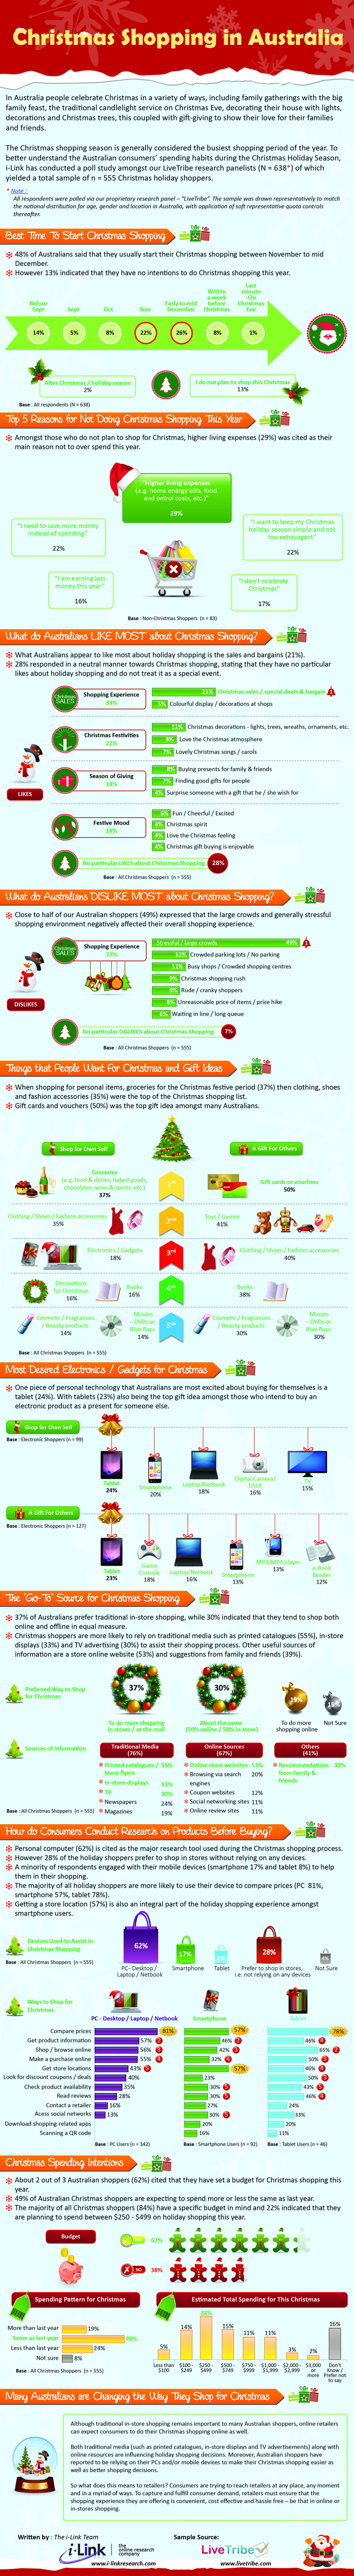 Christmas Shopping in Australia Infographic